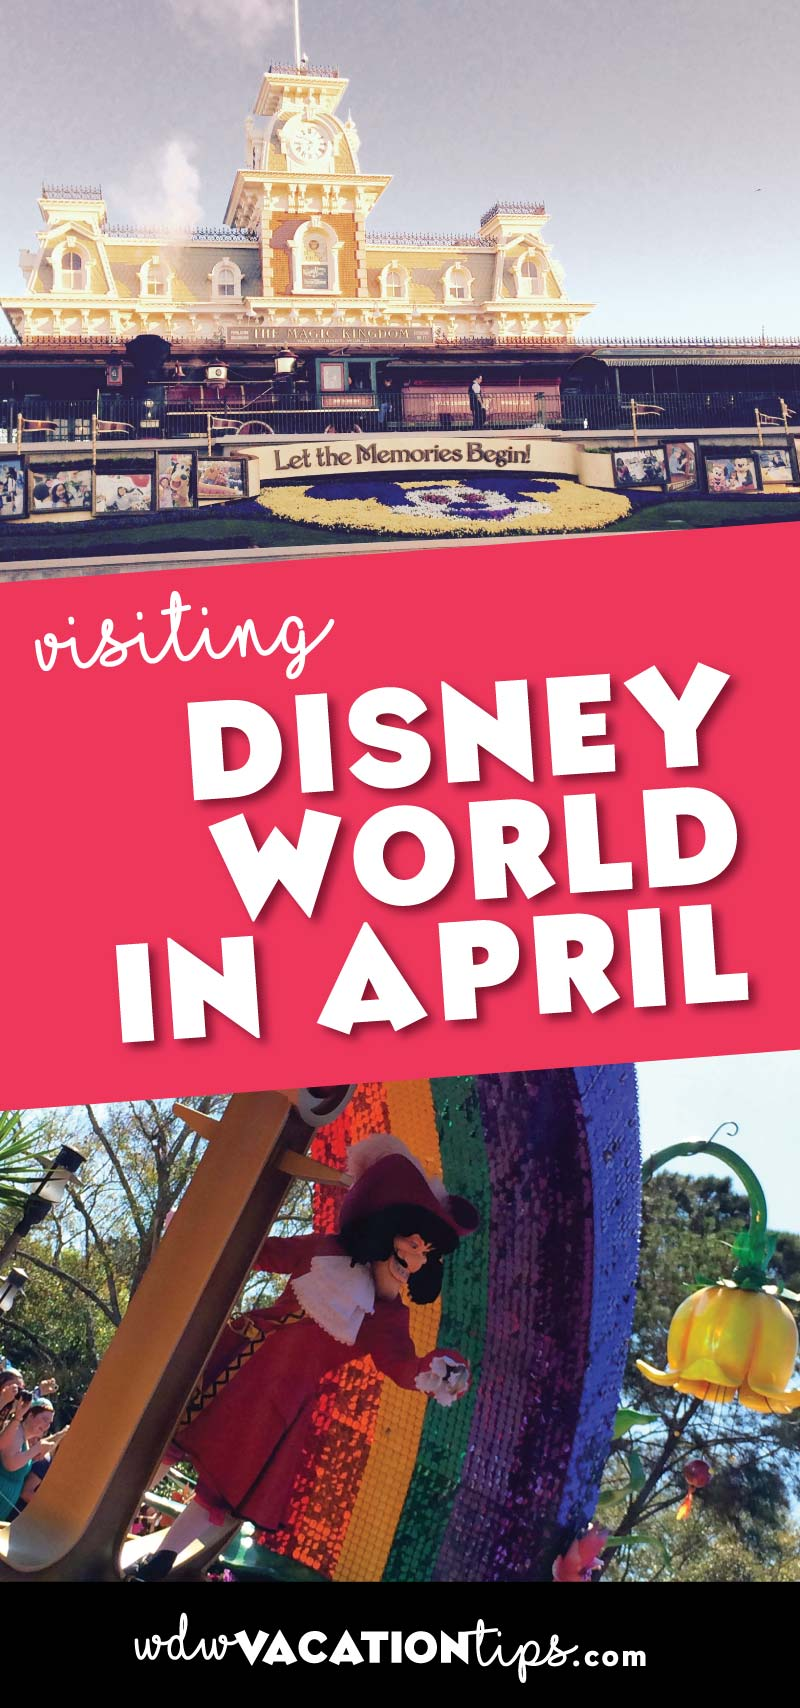 Disney World in April also known as spring break at Disney World. If you are planning a stay at Disney World in the beginning of this month when the crowds will be heavier you are going to want to make sure you are diligent in putting together your plan.